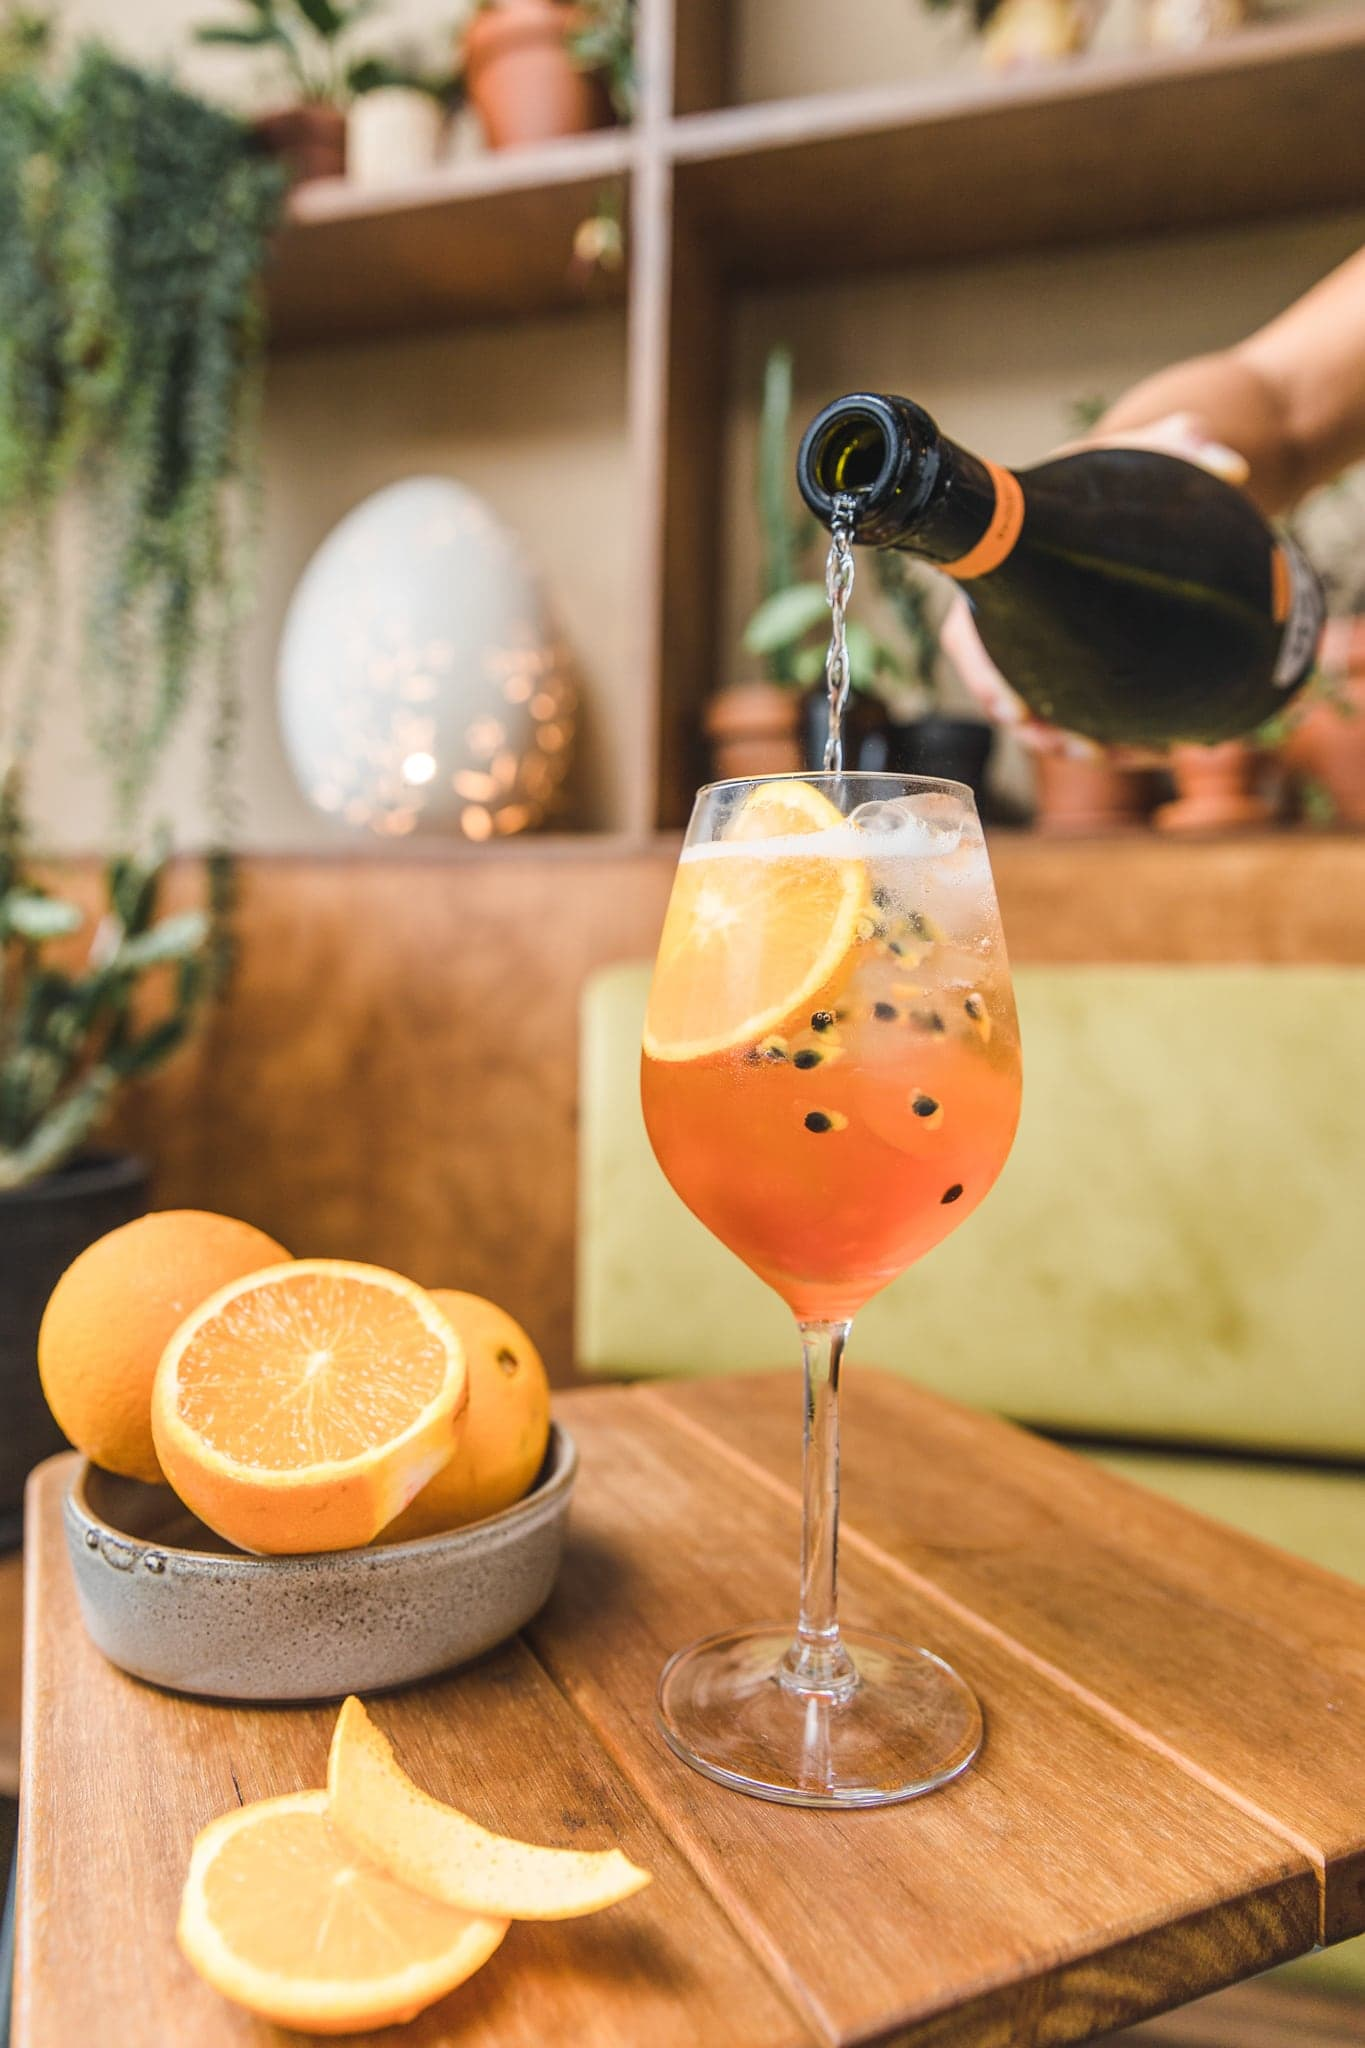 Barrio-events-and-catering-byron-bay-cocktails-passionfruit spritz 1